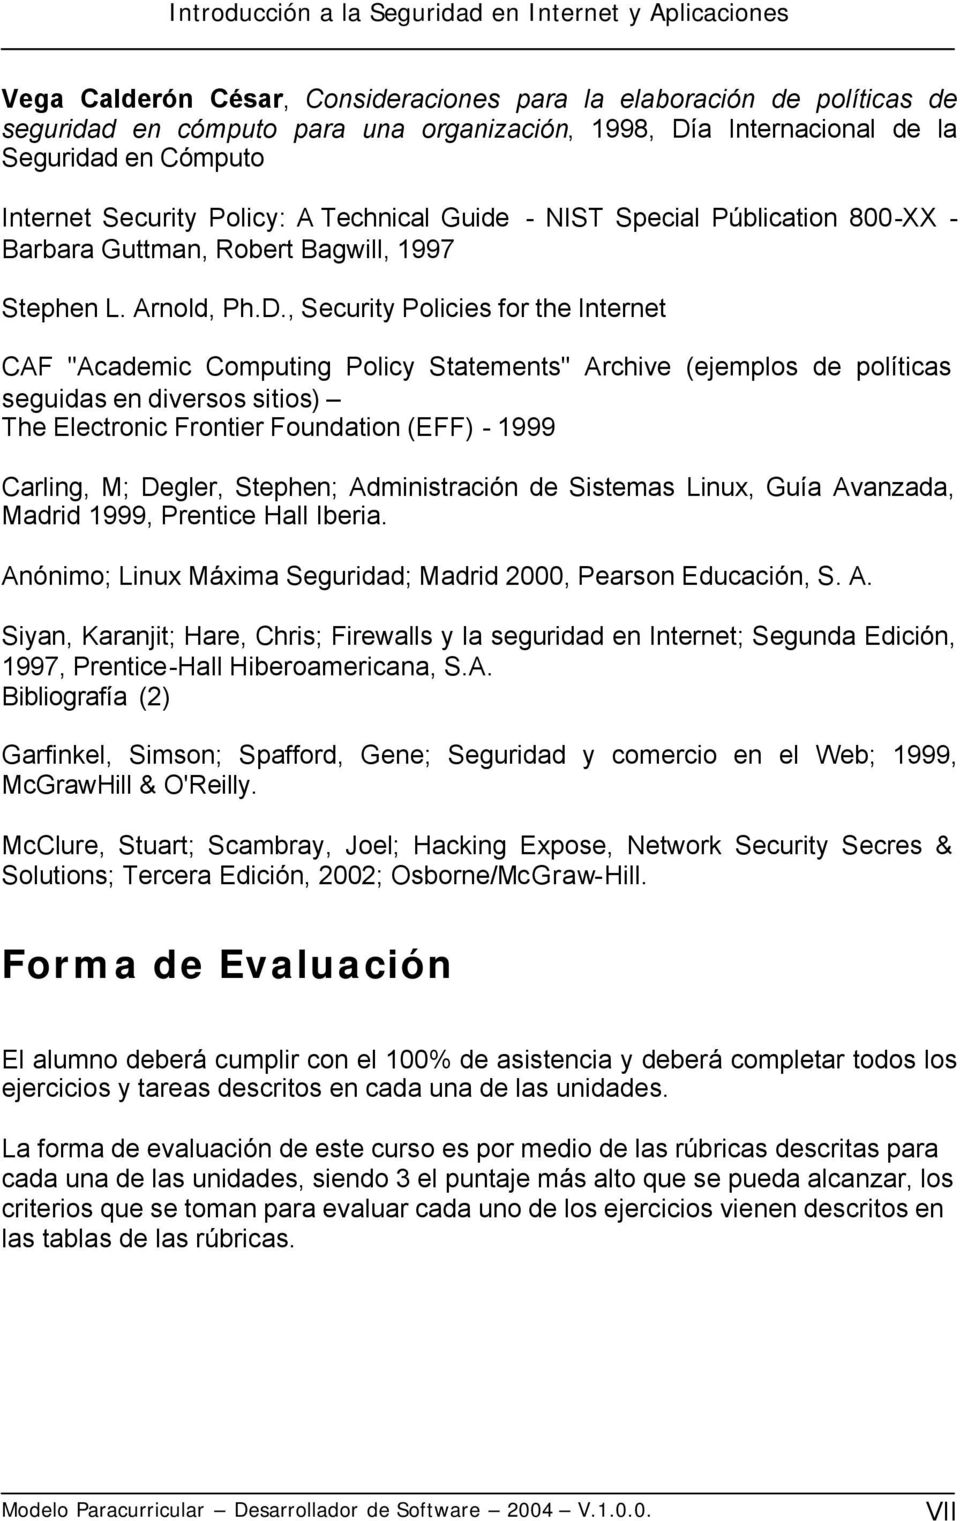 ", Security Policies for the Internet CAF ""Academic Computing Policy Statements"" Archive (ejemplos de políticas seguidas en diversos sitios) The Electronic Frontier Foundation (EFF) - 1999 Carling, M;"